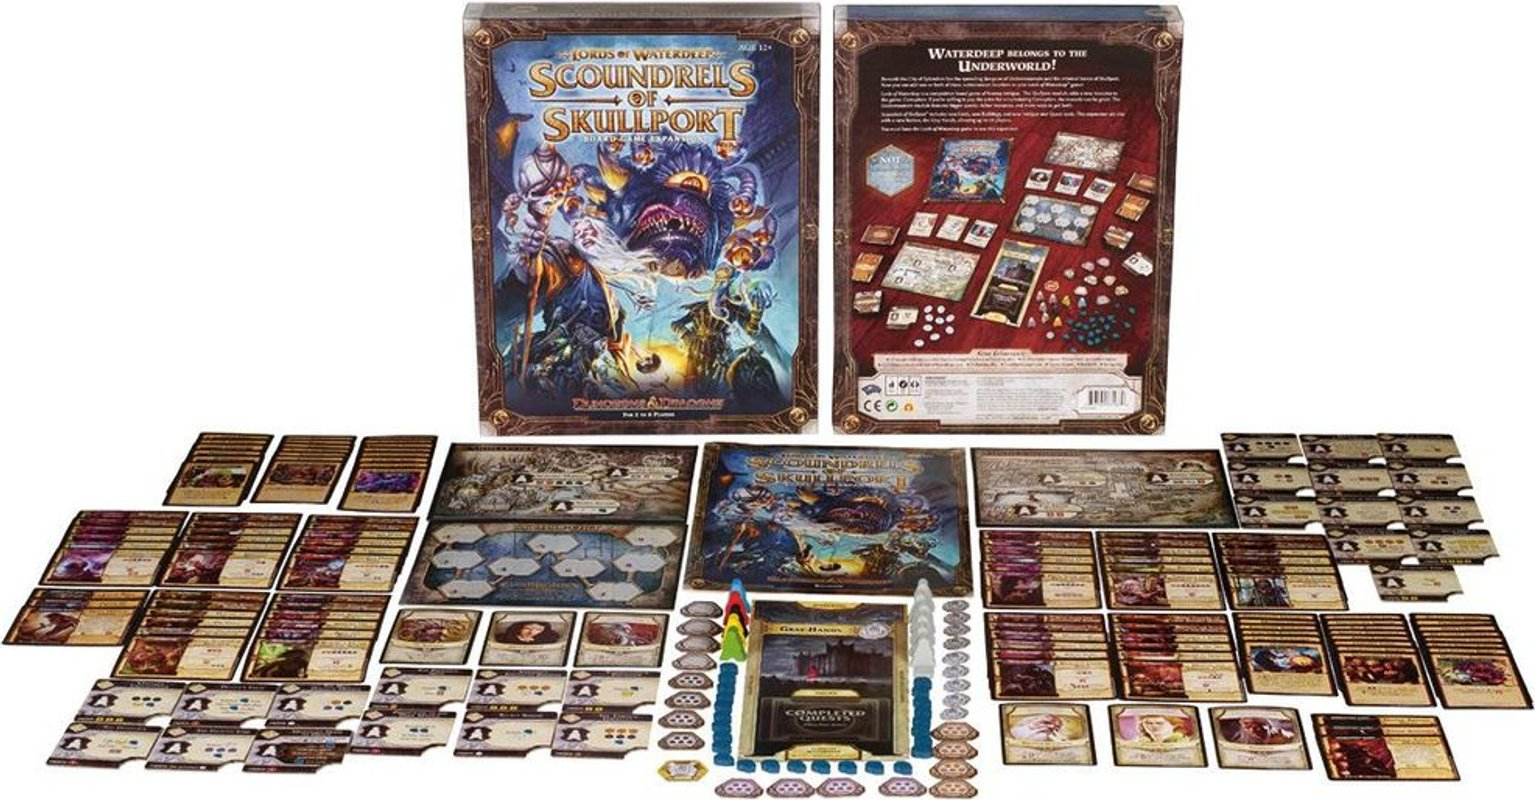 Lords of Waterdeep: Scoundrels of Skullport partes